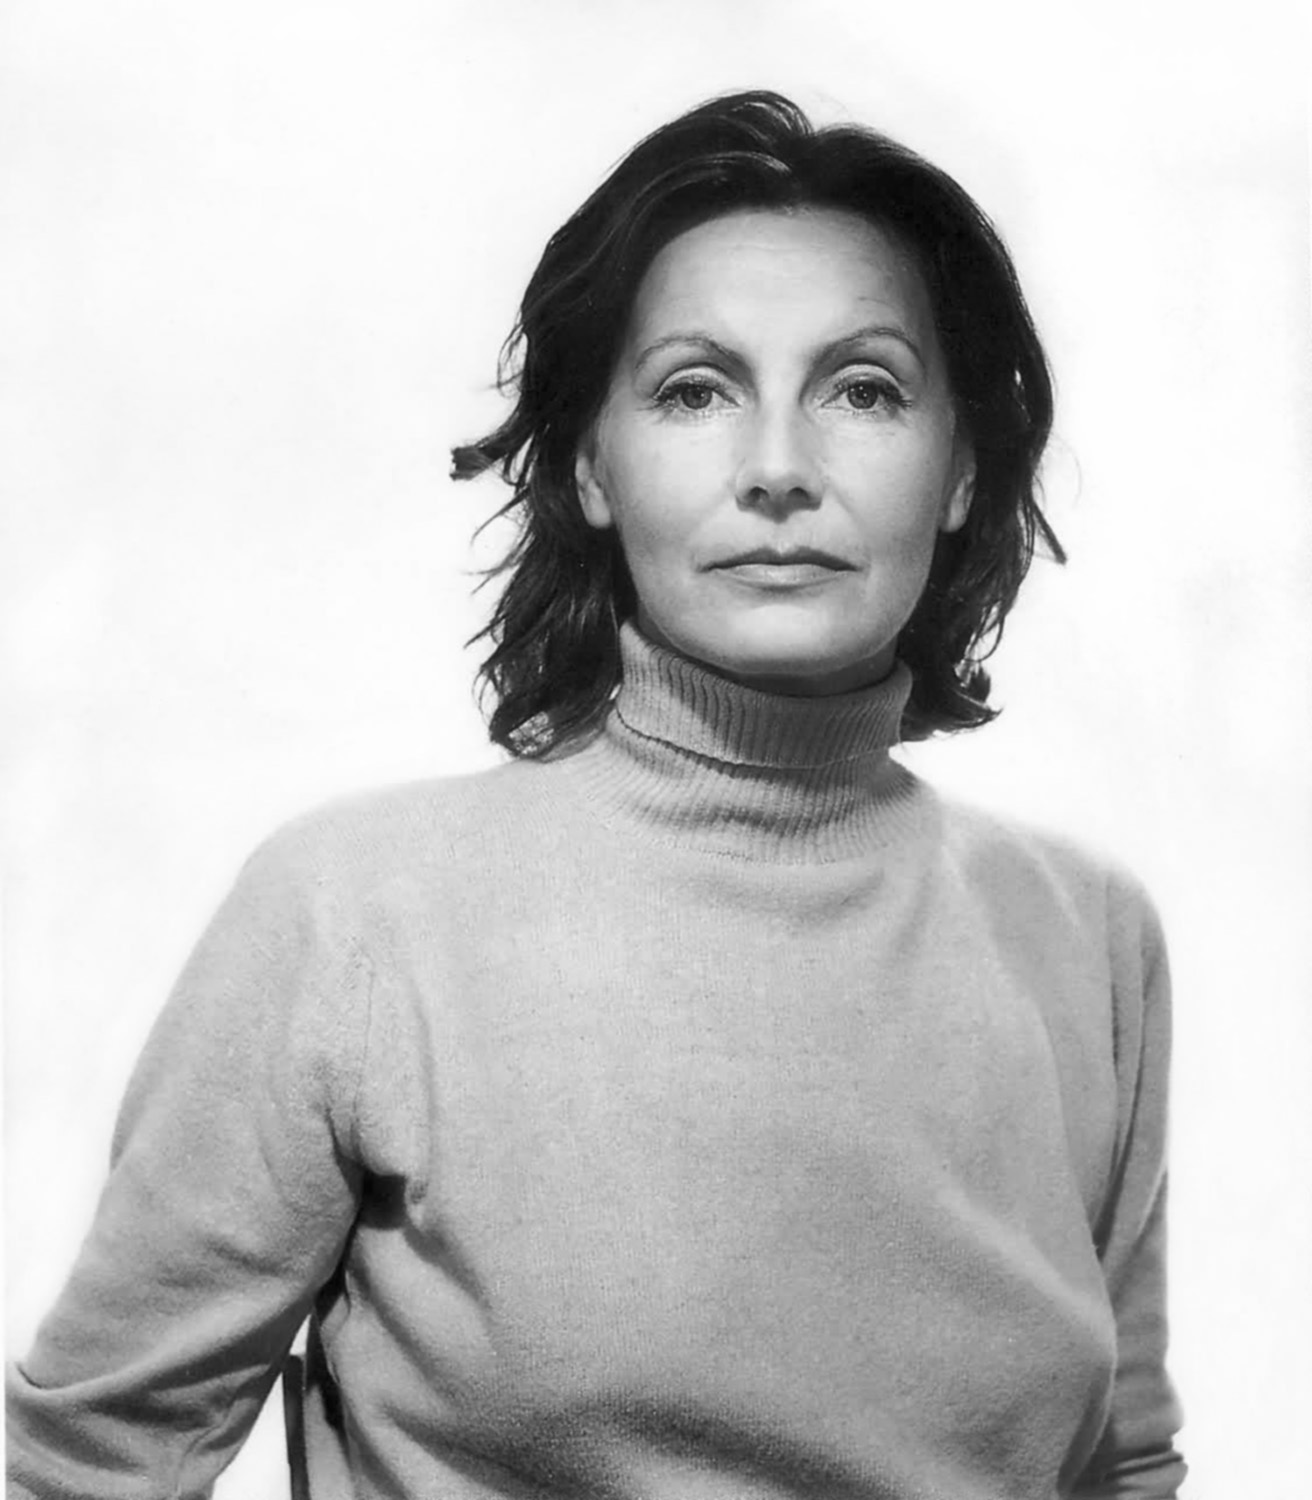 greta garbo 1990greta garbo biography, greta garbo flickr, greta garbo dress, greta garbo kimdir, greta garbo young, greta garbo and cecil beaton, greta garbo 1990, greta garbo gif, greta garbo height, greta garbo quotes, greta garbo pen, greta garbo anna karenina, greta garbo autograph, greta garbo wiki, greta garbo prajitura, greta garbo wedding, greta garbo color, greta garbo born, greta garbo natal chart, greta garbo photo